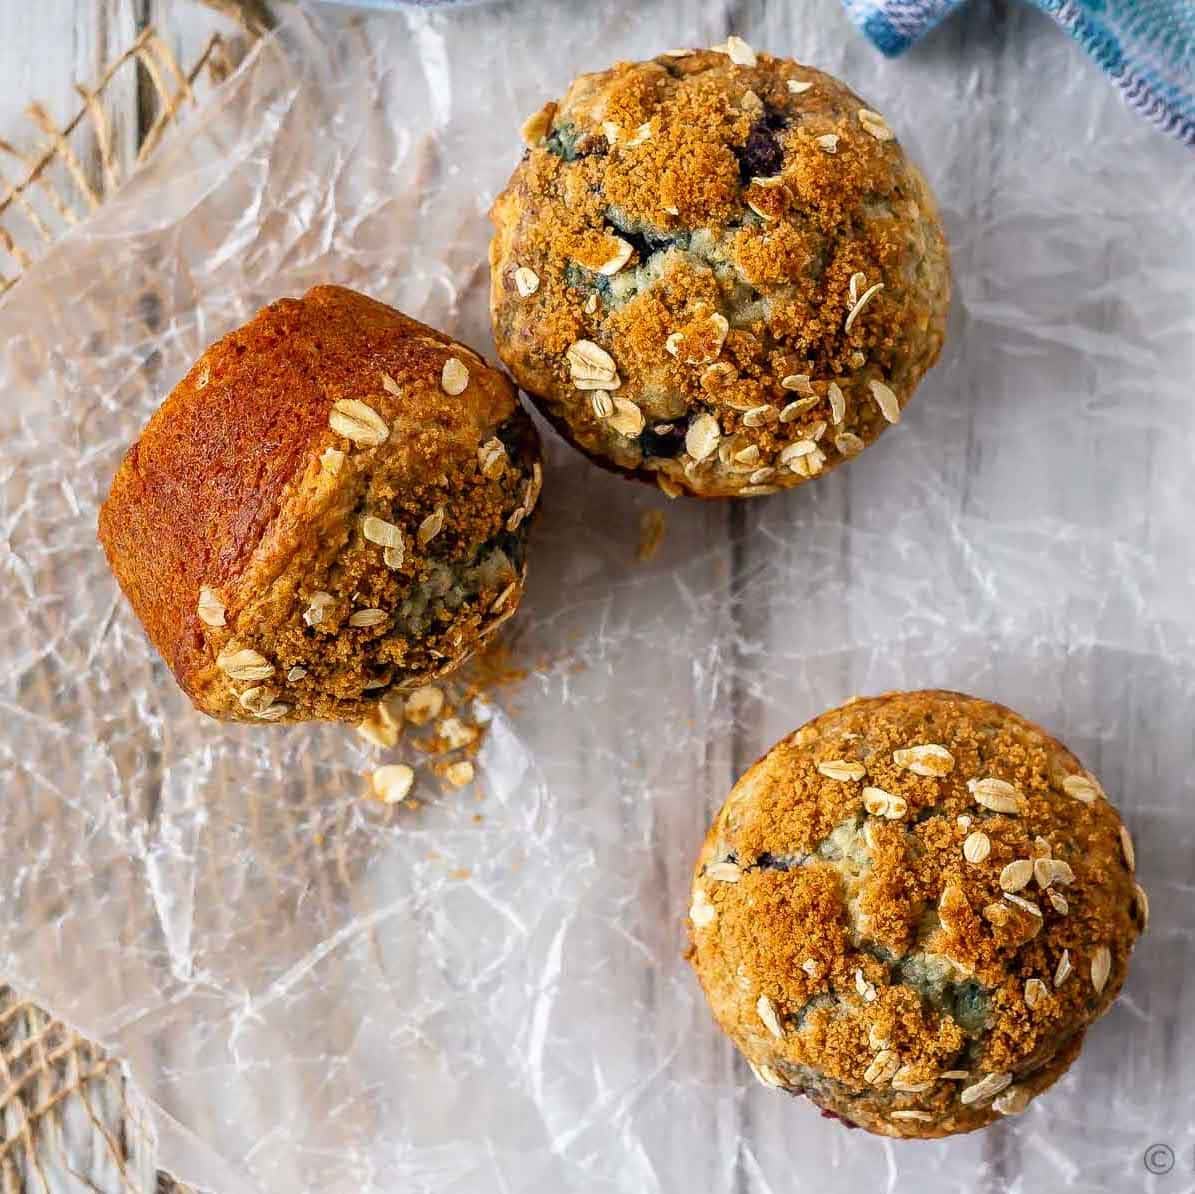 Enjoy a healthier blueberry muffin with these blueberry oatmeal muffins - filled with oats and blueberries, and less oil and sugar then your typical muffin!